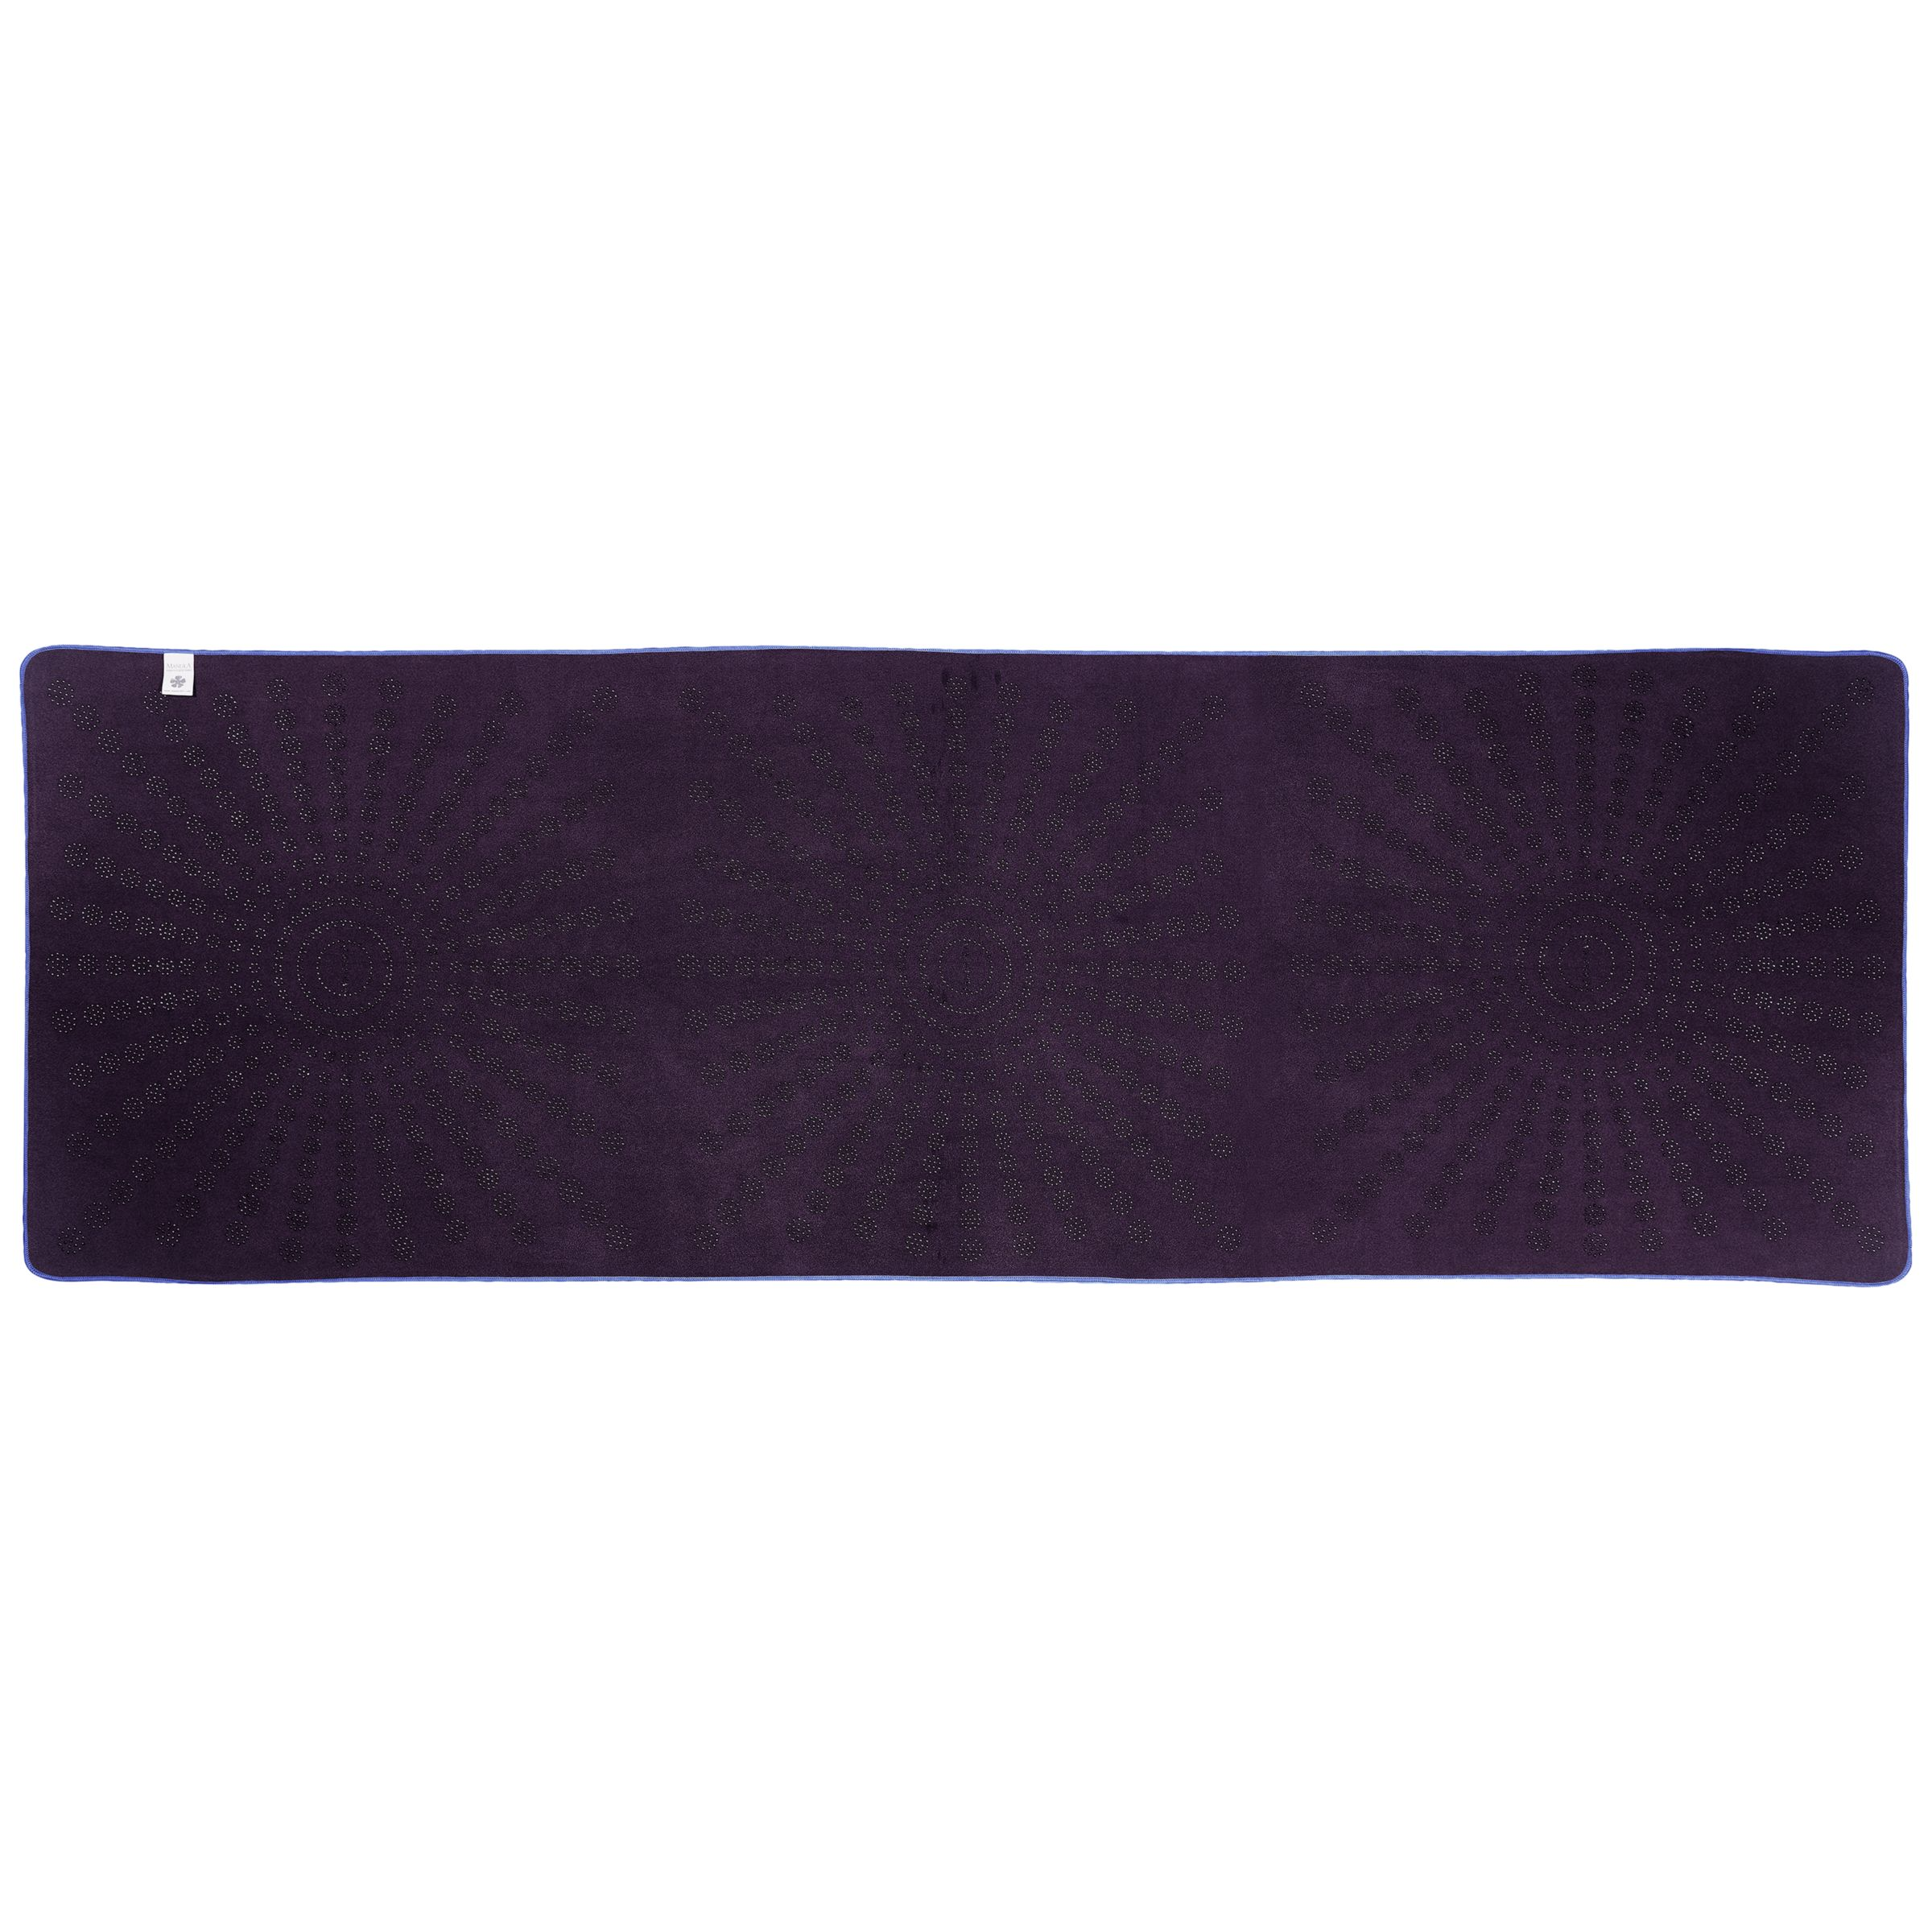 Manuka Anti-Slip Yoga Towel